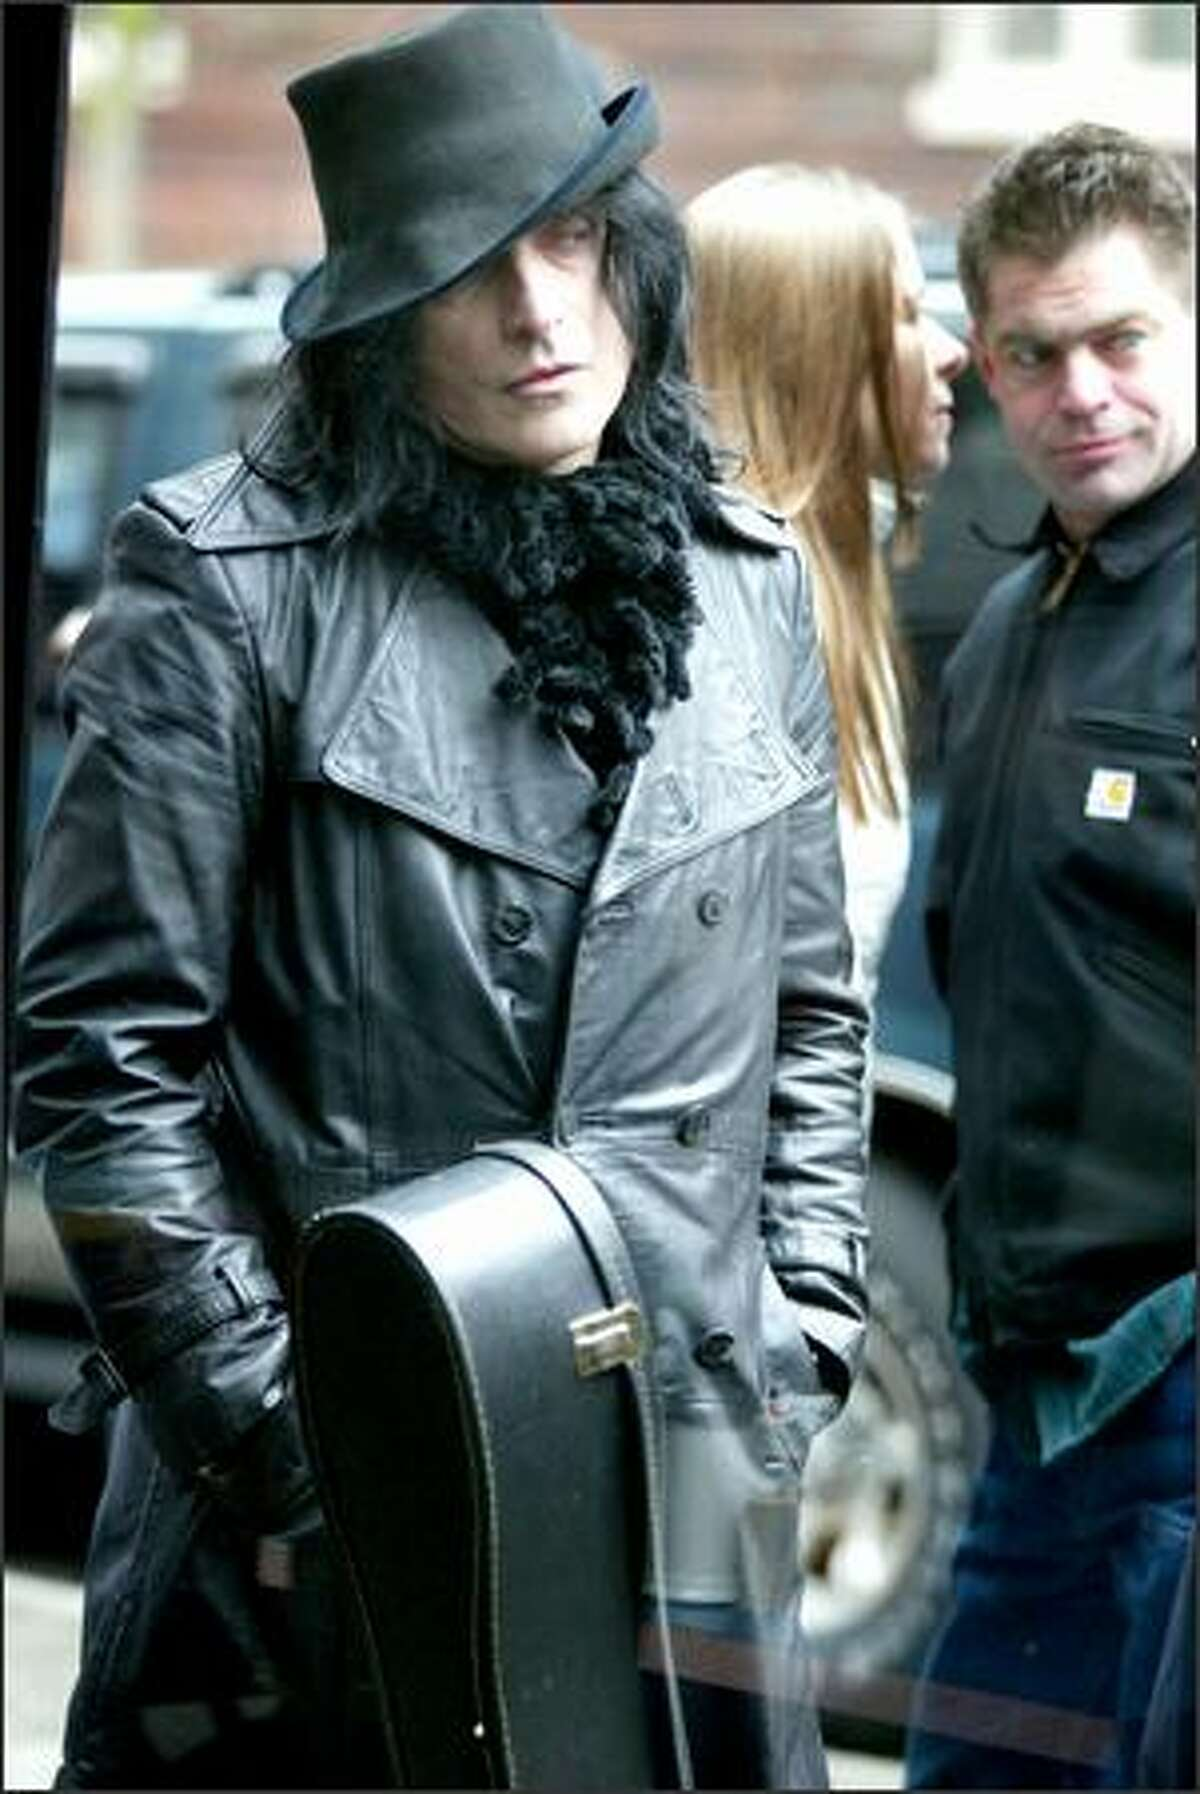 On Saturday, March 18, 2006 Hyde (yes, Hyde), waits his turn outside the Crocodile Cafe to audition for the CBS reality show